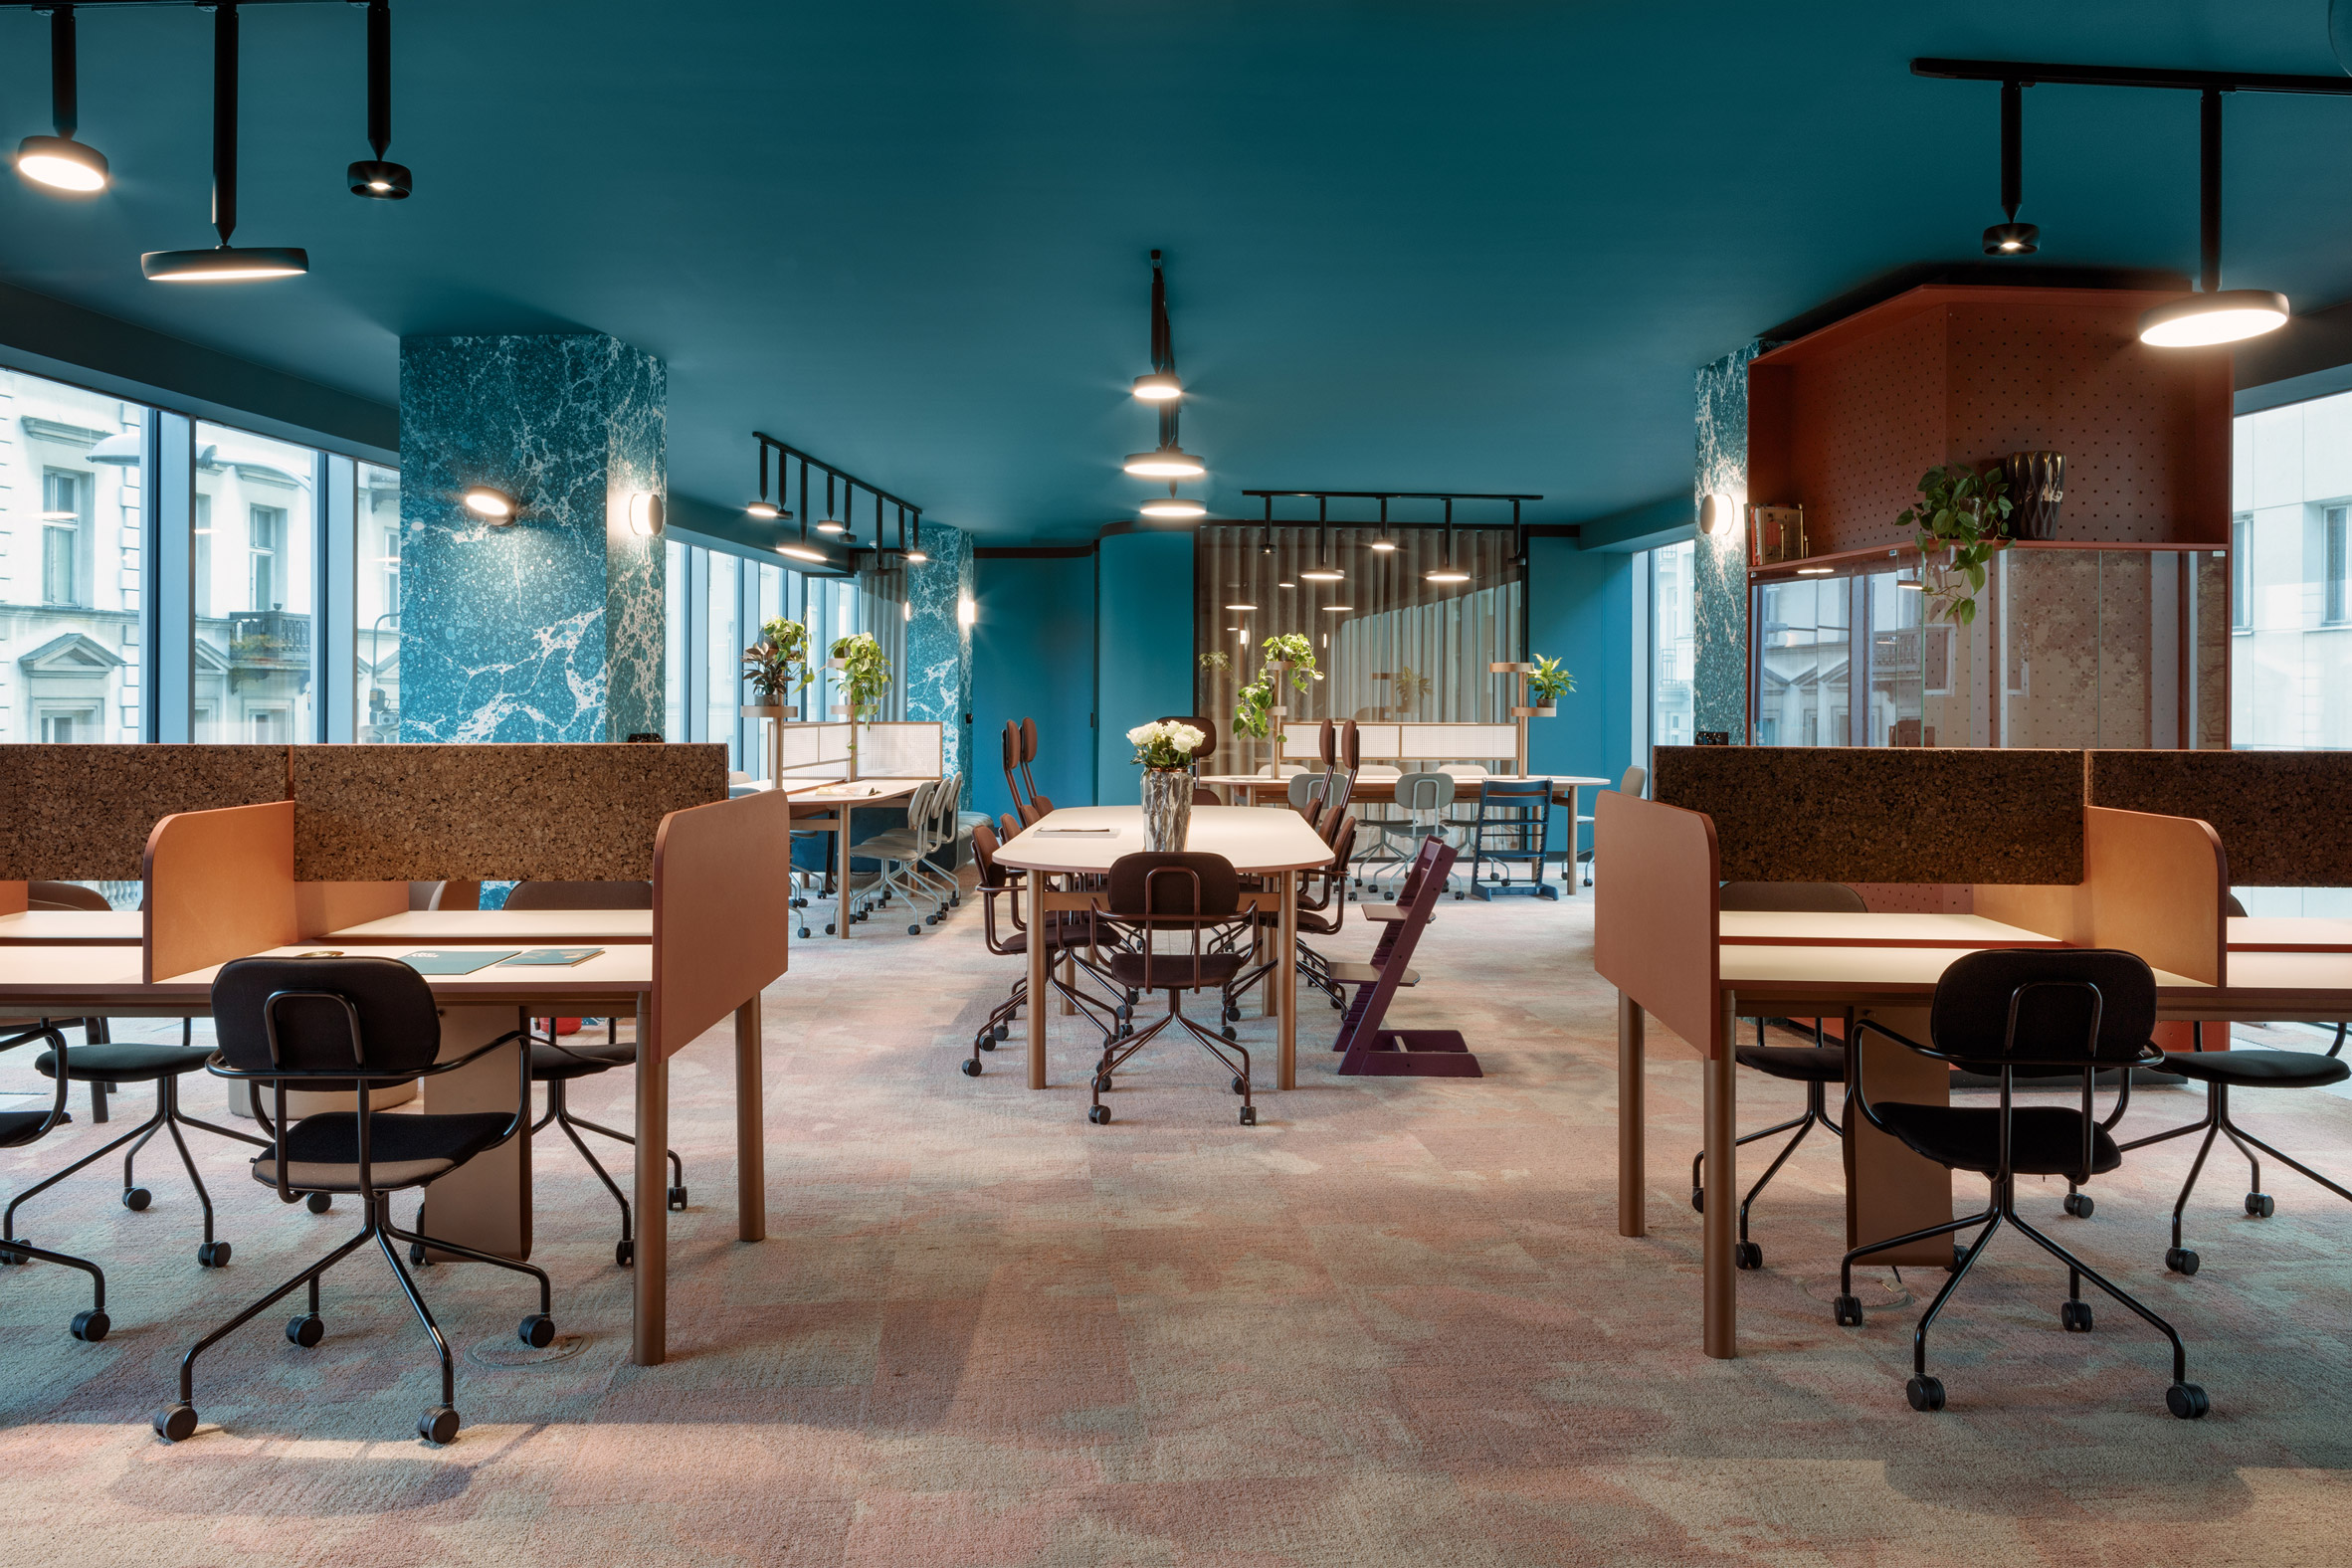 The Nest Beza Interiors & Beza Interiors Designs The Nest an Exceptional Coworking Space in ...